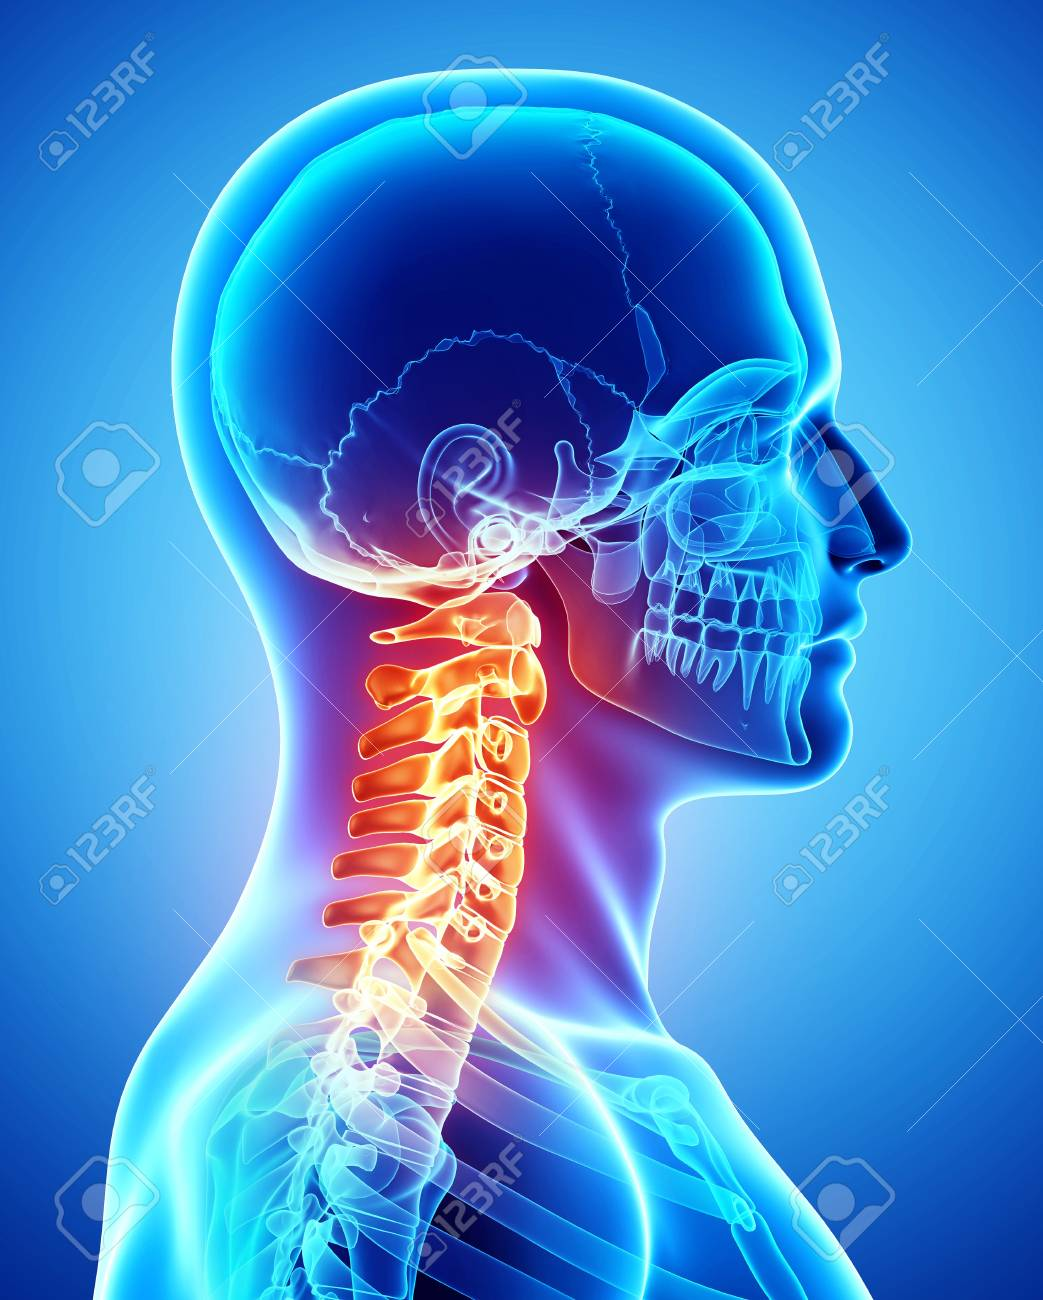 Neck Paincomputer Artwork Stock Photo Picture And Royalty Free